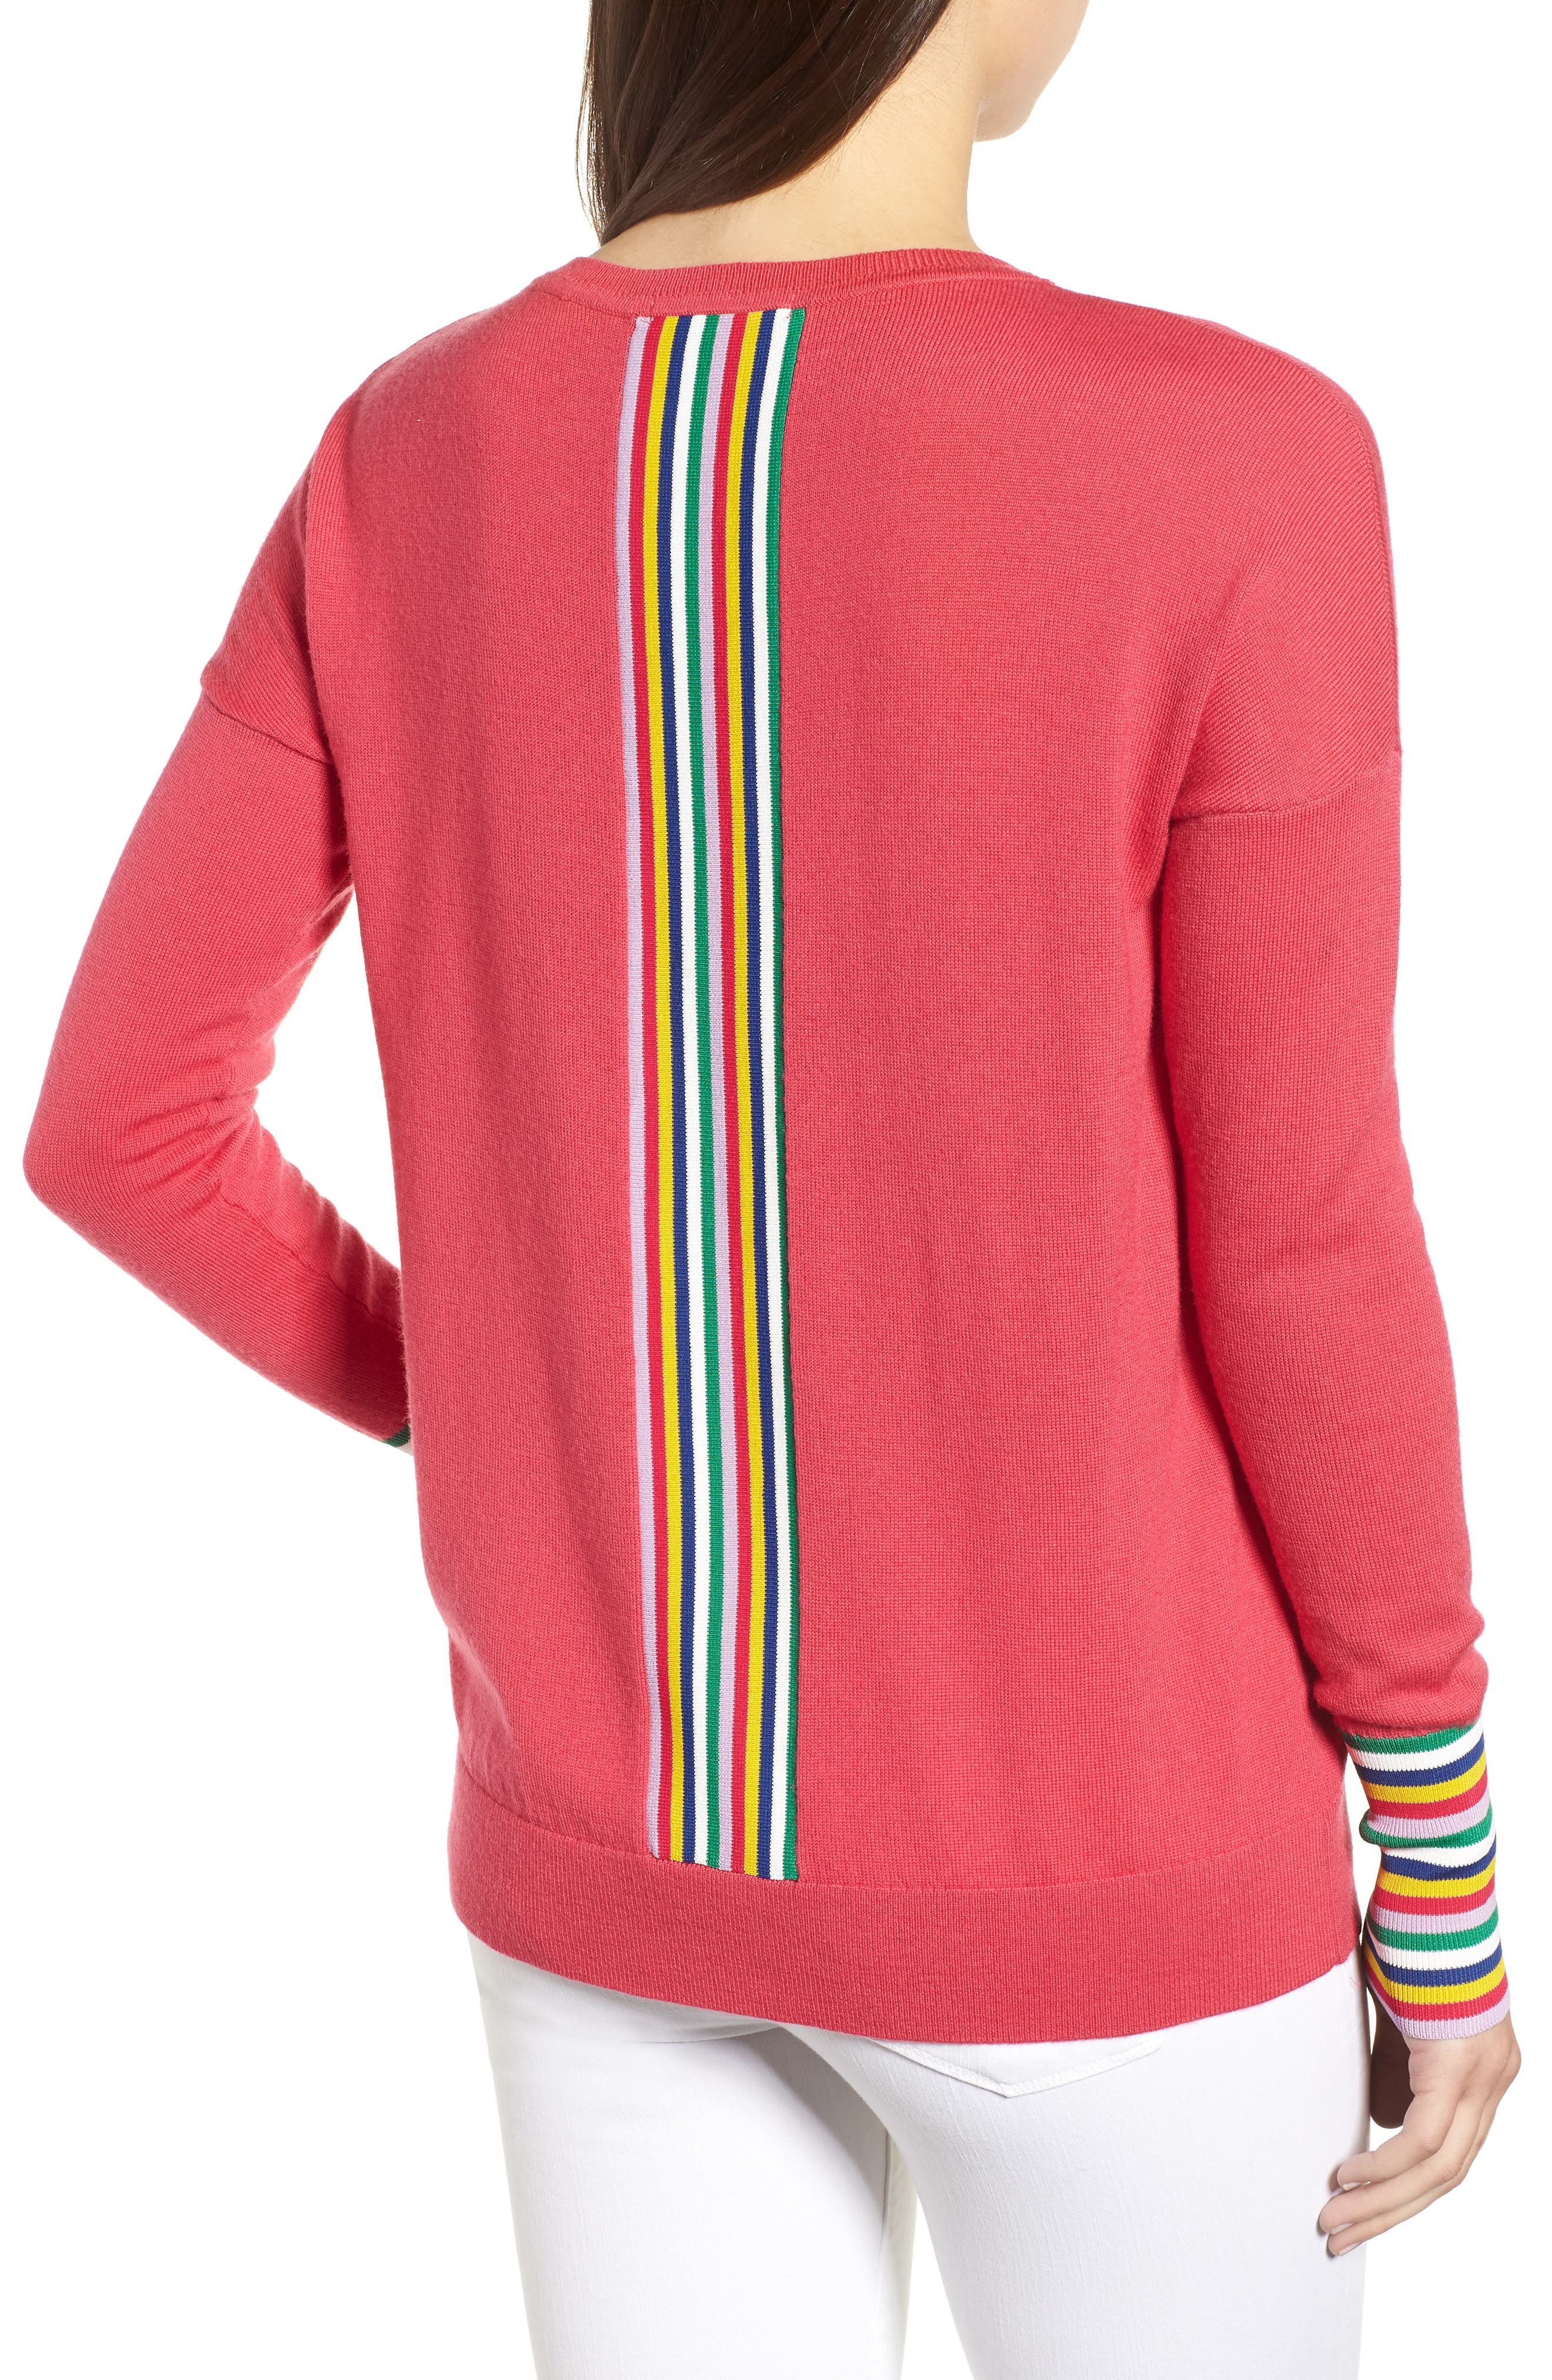 Cassandra Sweater,                             Alternate thumbnail 2, color,                             Carnival Pink